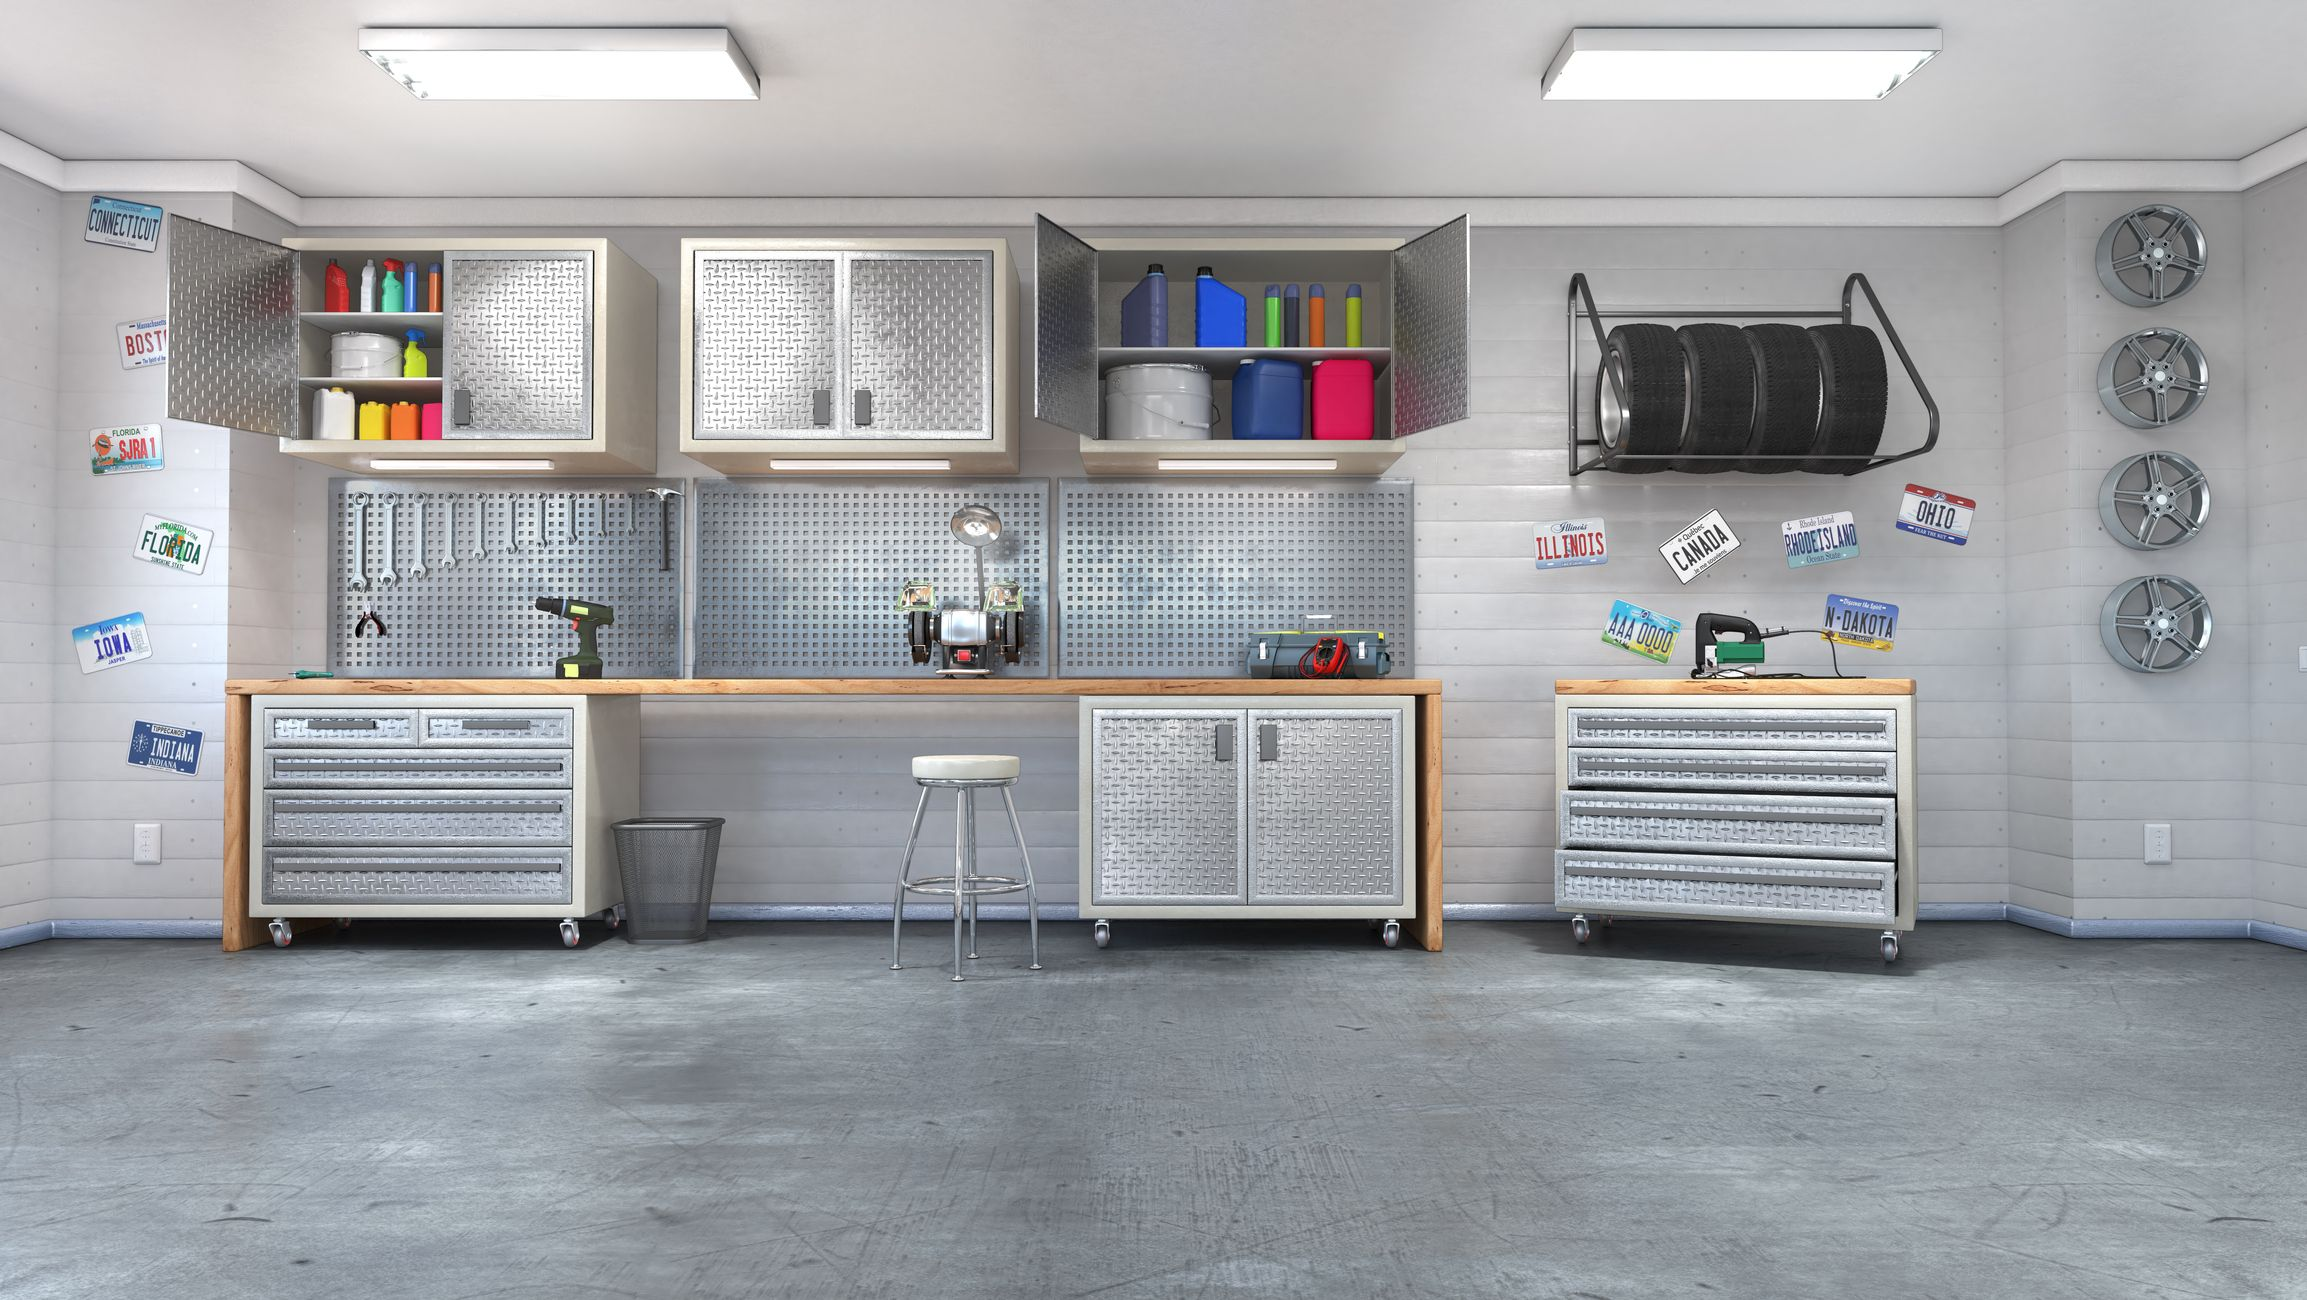 25 Smart Garage Organization Ideas - Garage Storage and Shelving Tips